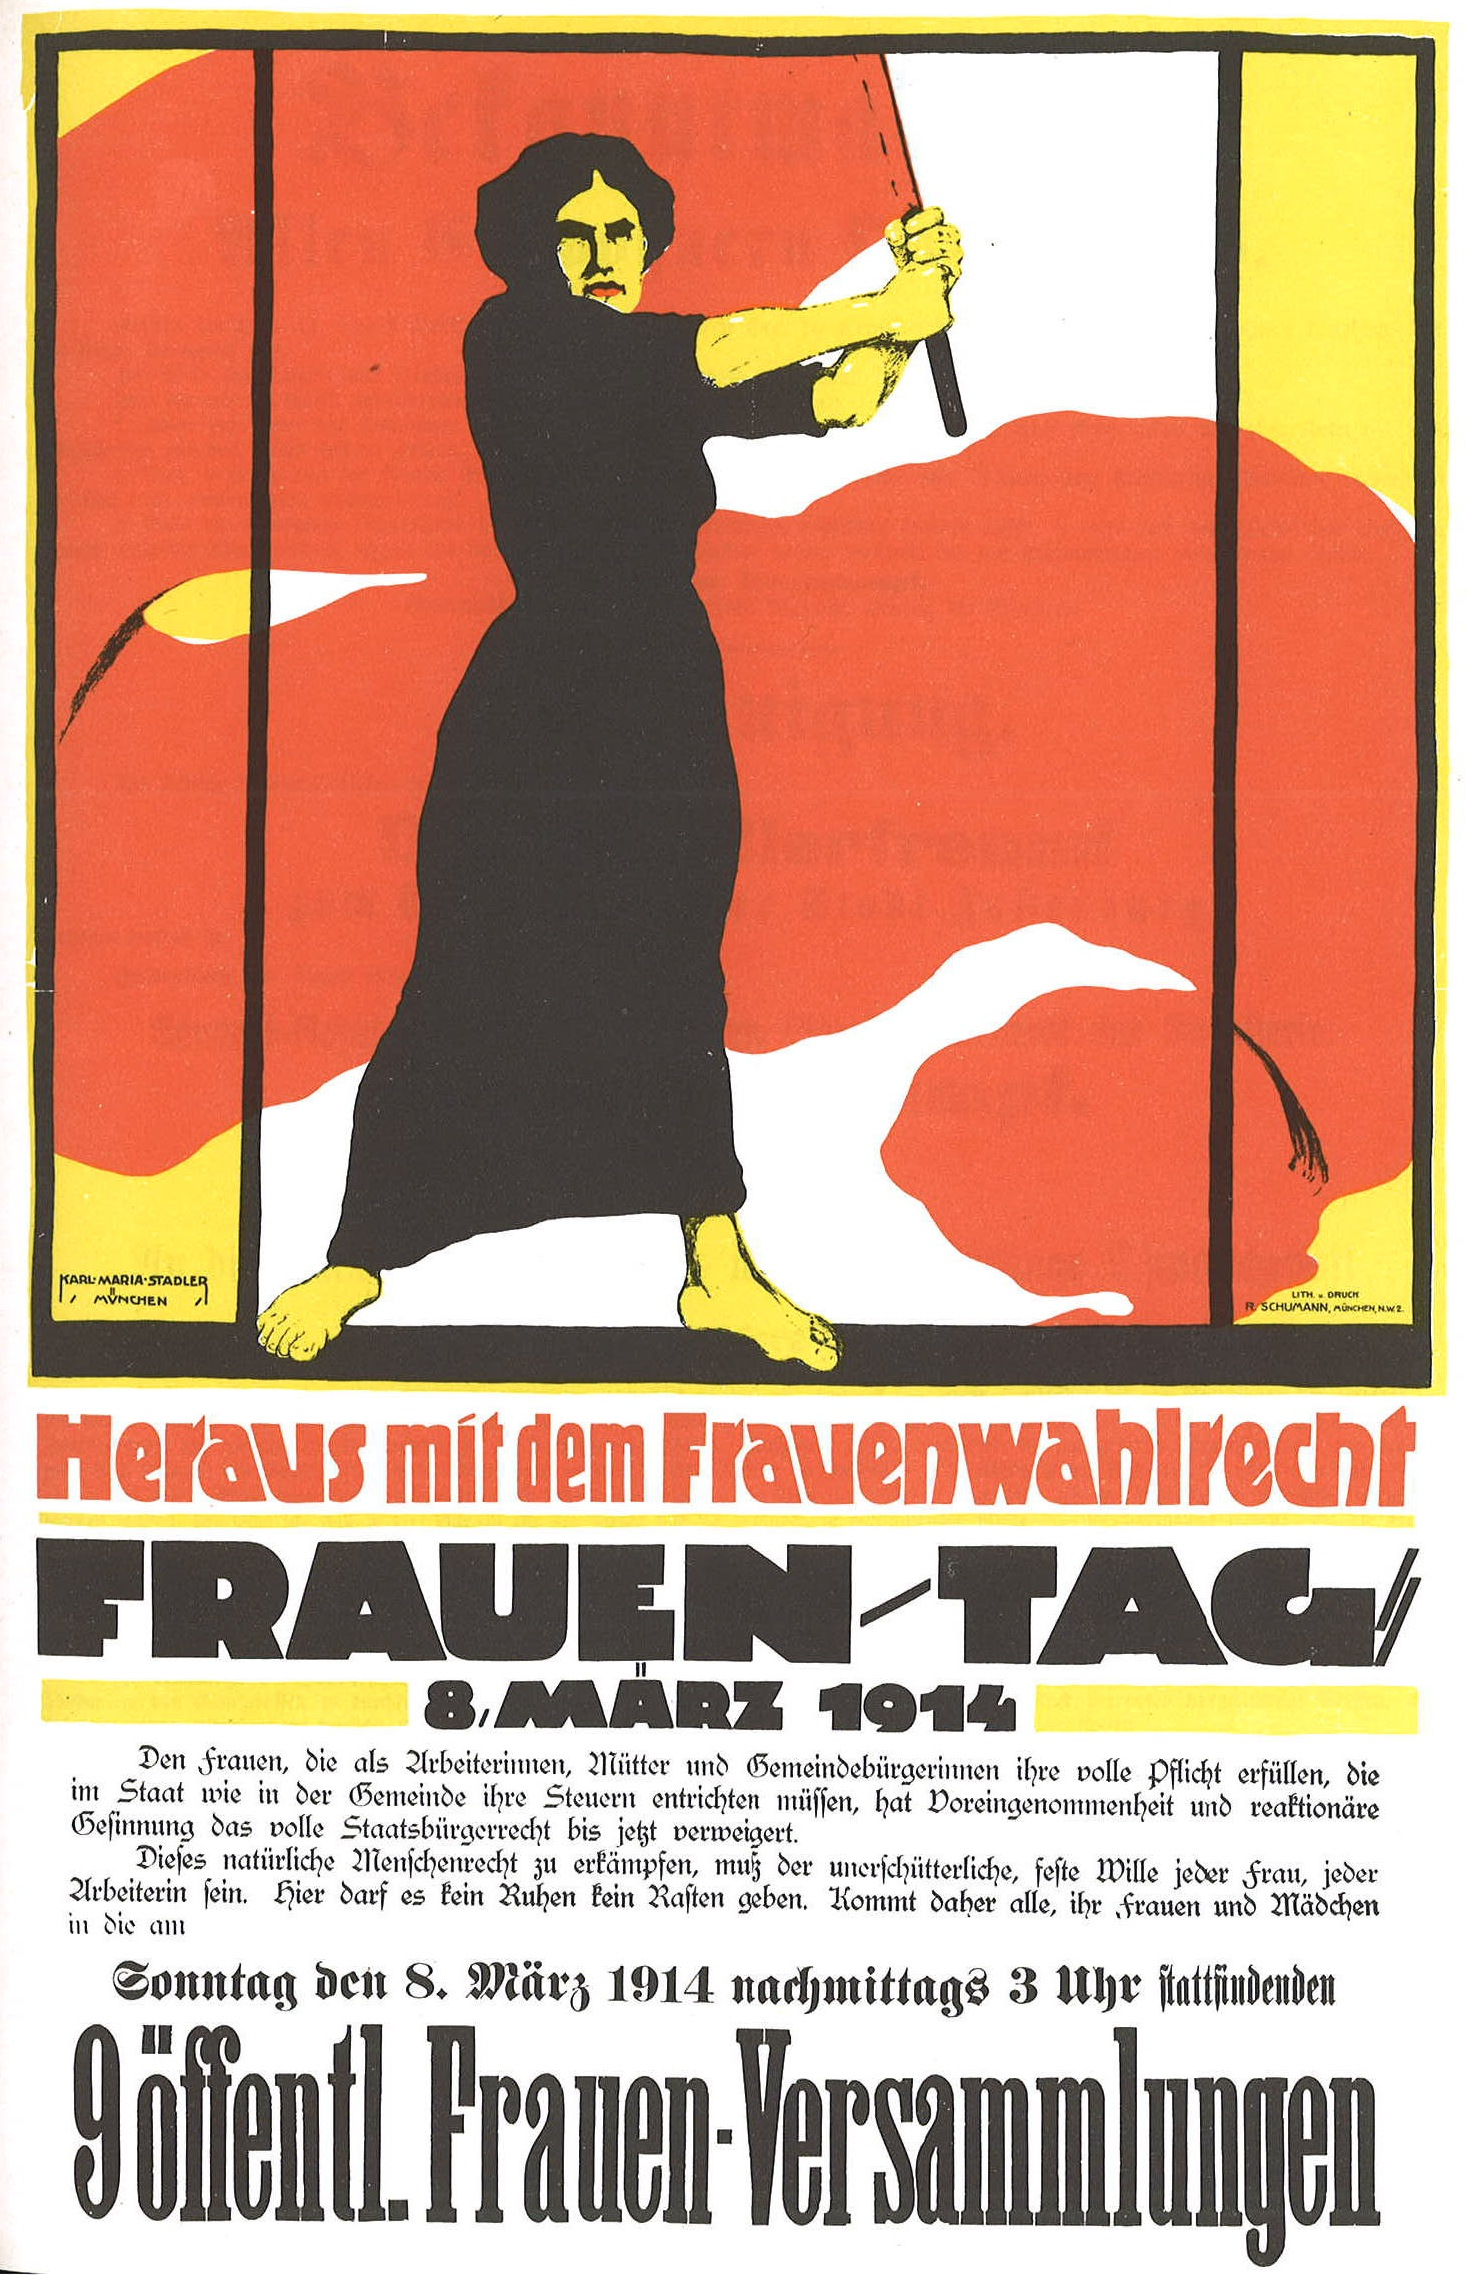 Historisches Plakat zum Internationalen Frauentag 1914